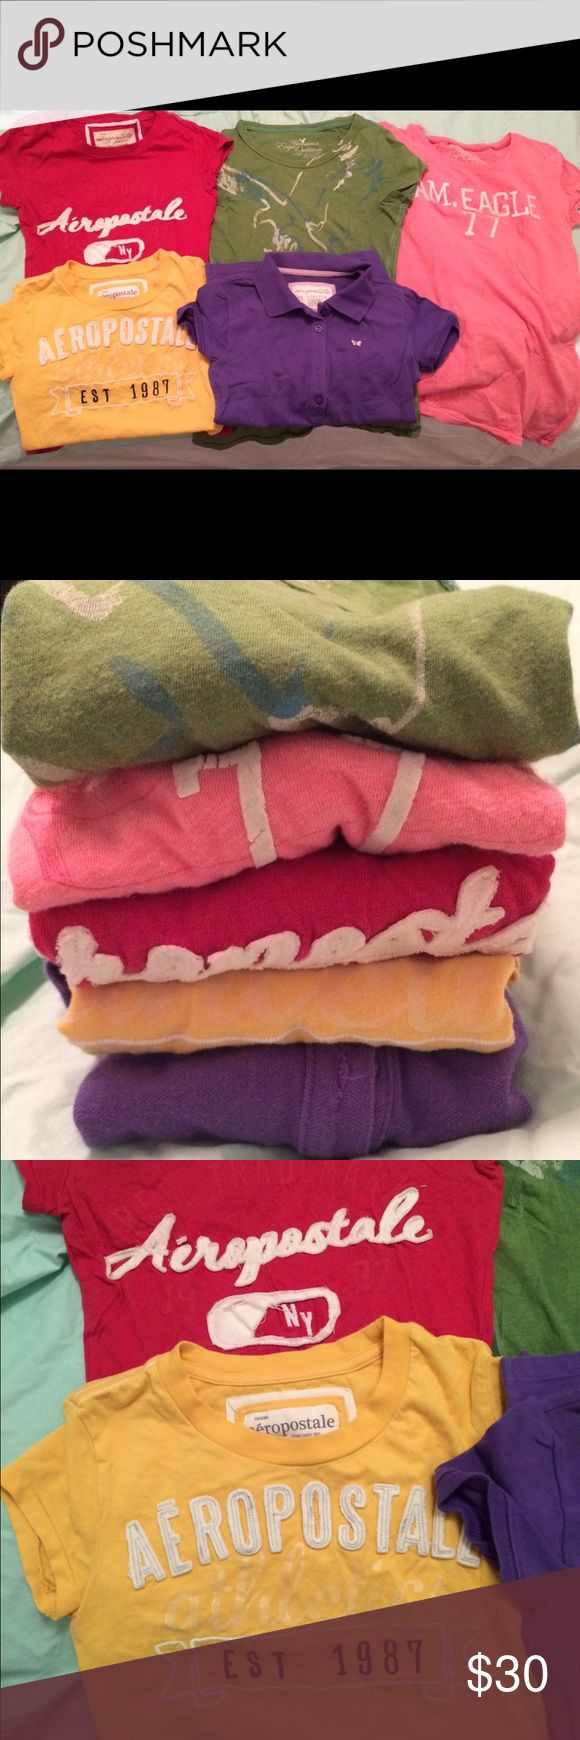 💄💋BUNDLE; size xs 5 tshirts!!!💄💋 All size xs t shirts! Barely worn; only for a few seconds of trying on and then washed with laundry machine! Bundle of 5!!! Mix of Aeropostale and American eagle shirts! American Eagle Outfitters Other